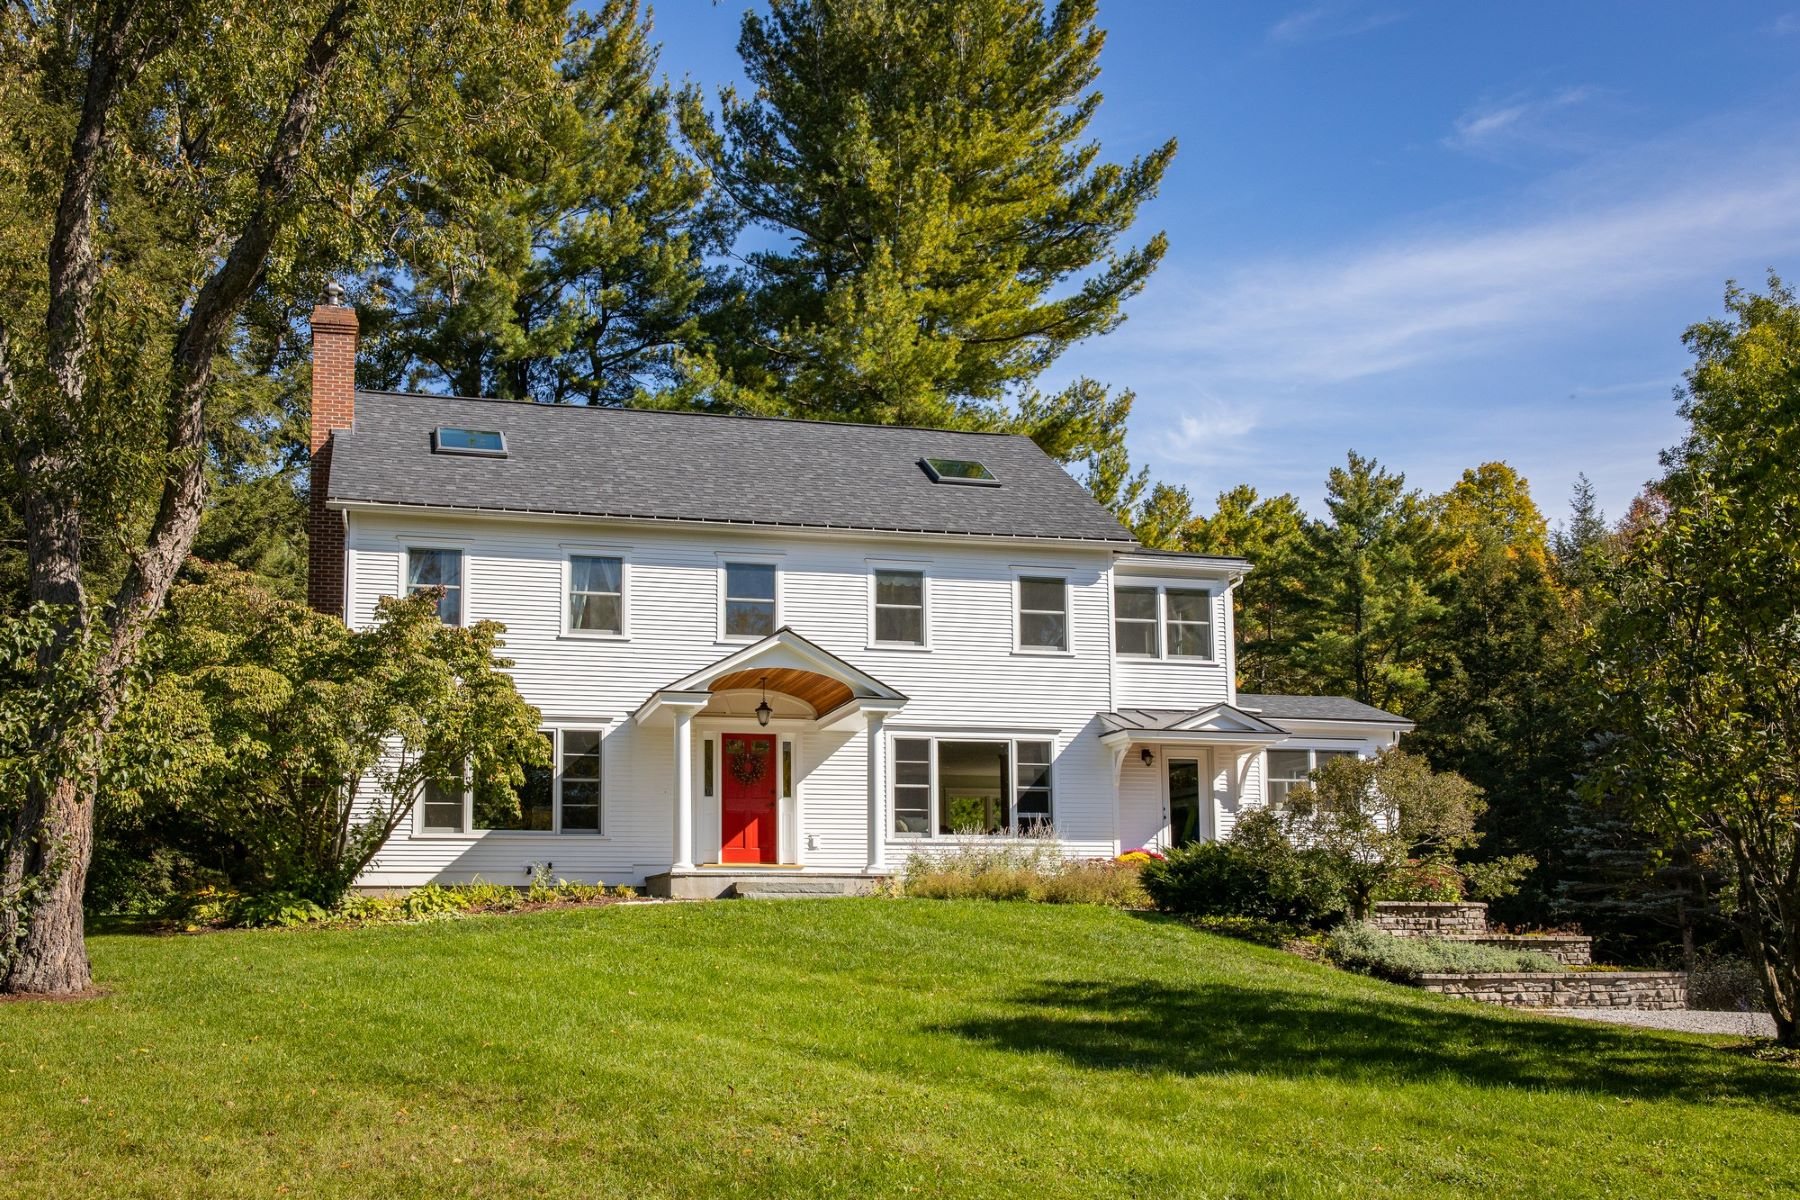 Single Family Homes for Sale at 163 Old Stage Lane, Shelburne 163 Old Stage Ln Shelburne, Vermont 05482 United States